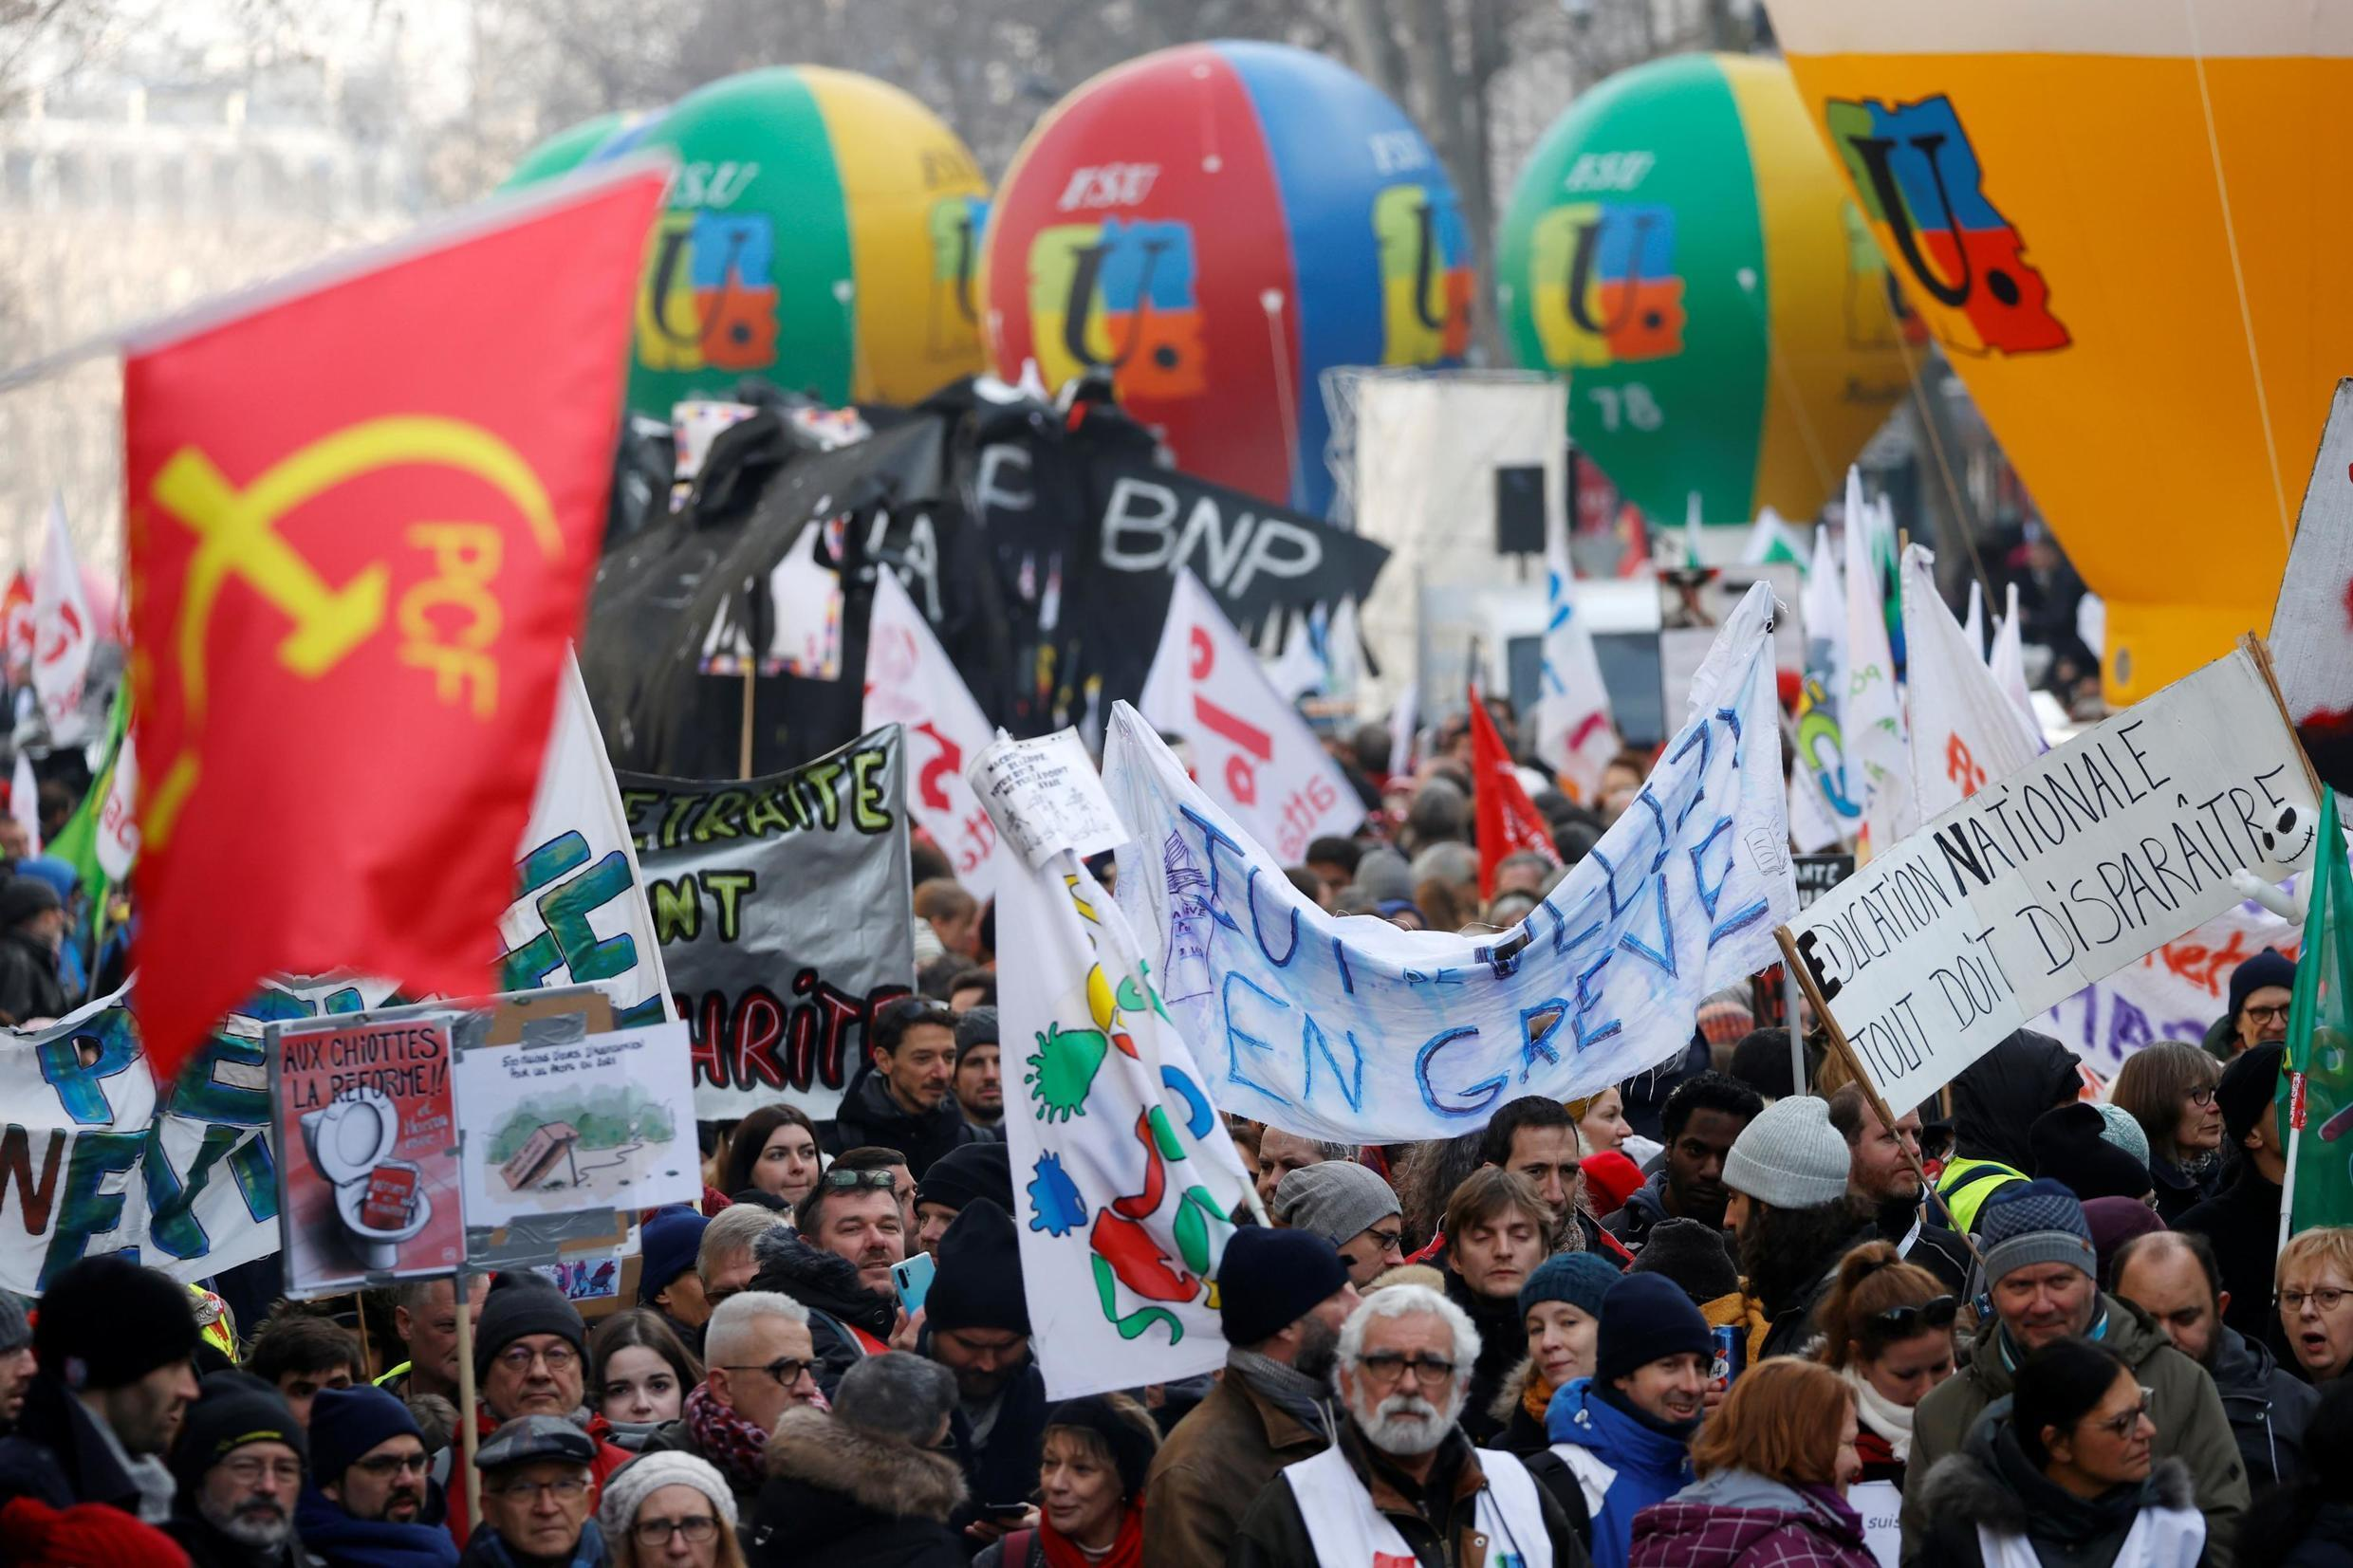 More strikes to come? The intersyndicale union grouping wants a massive day of action on Tuesday 3 March to protest Emmanuel Macron's pension reform.